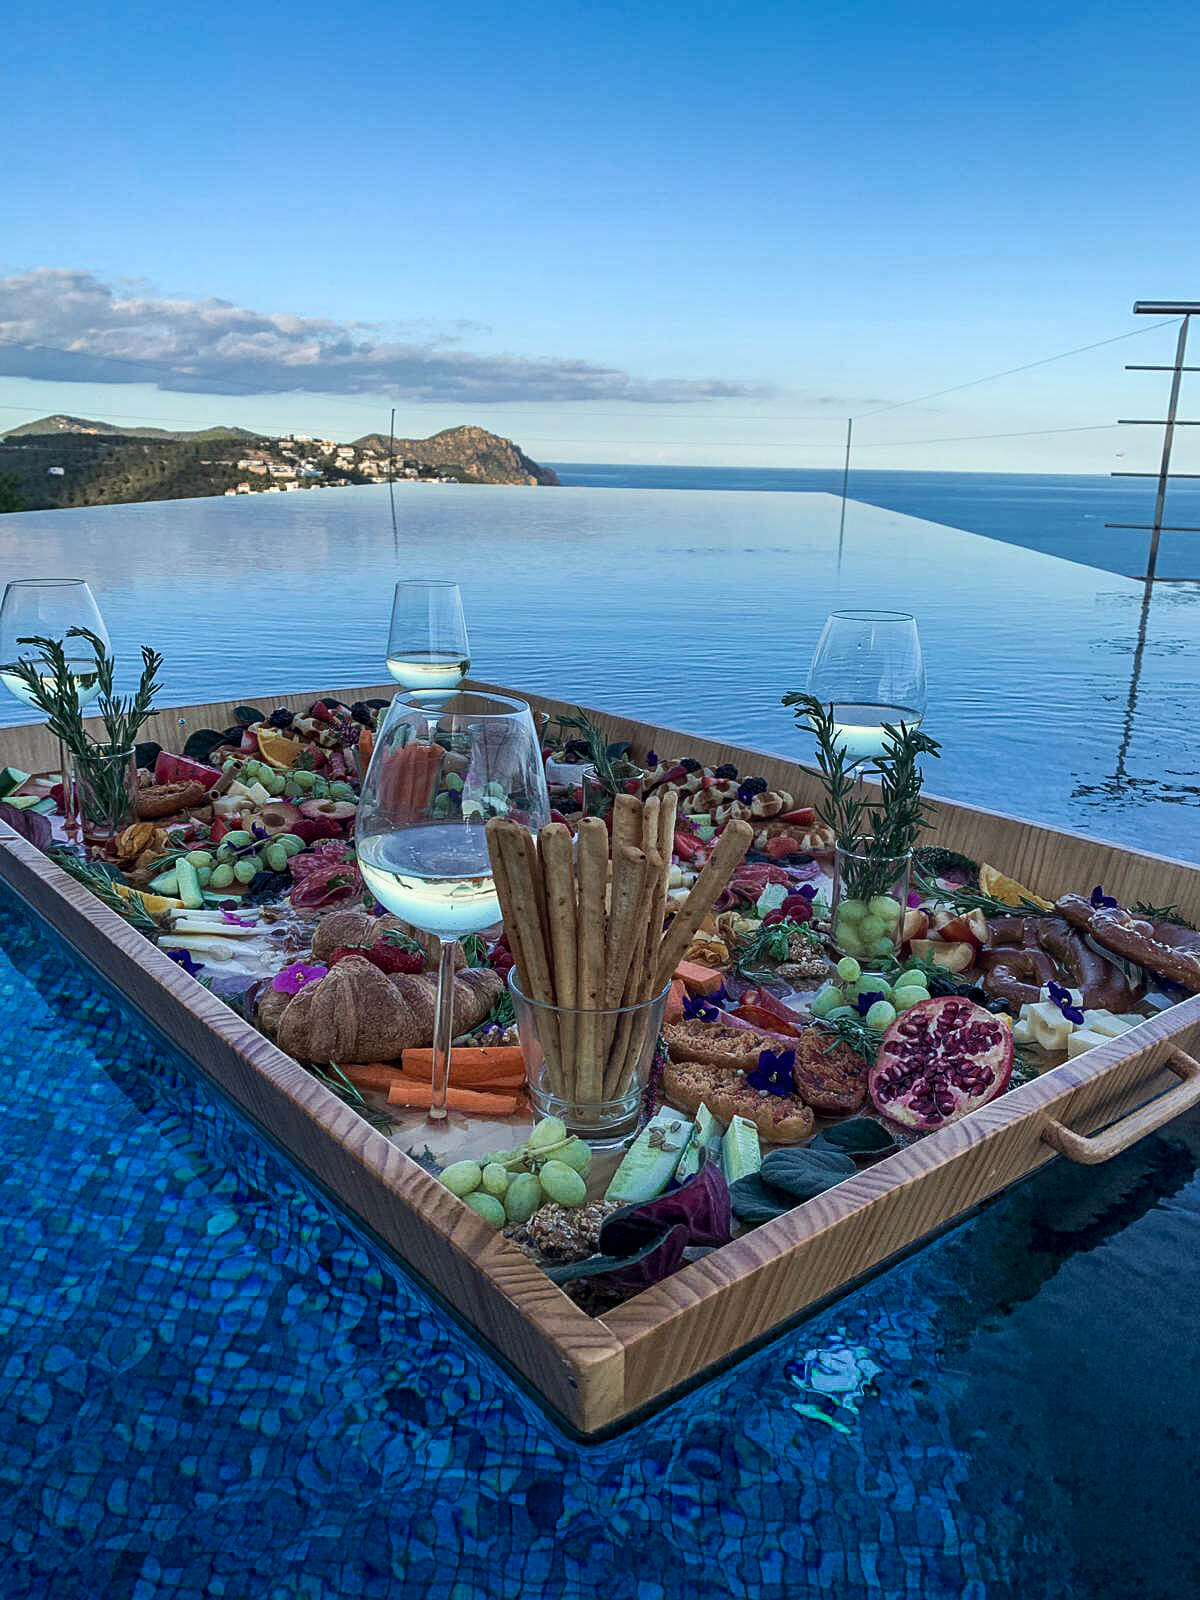 How does a floated picnic look like?